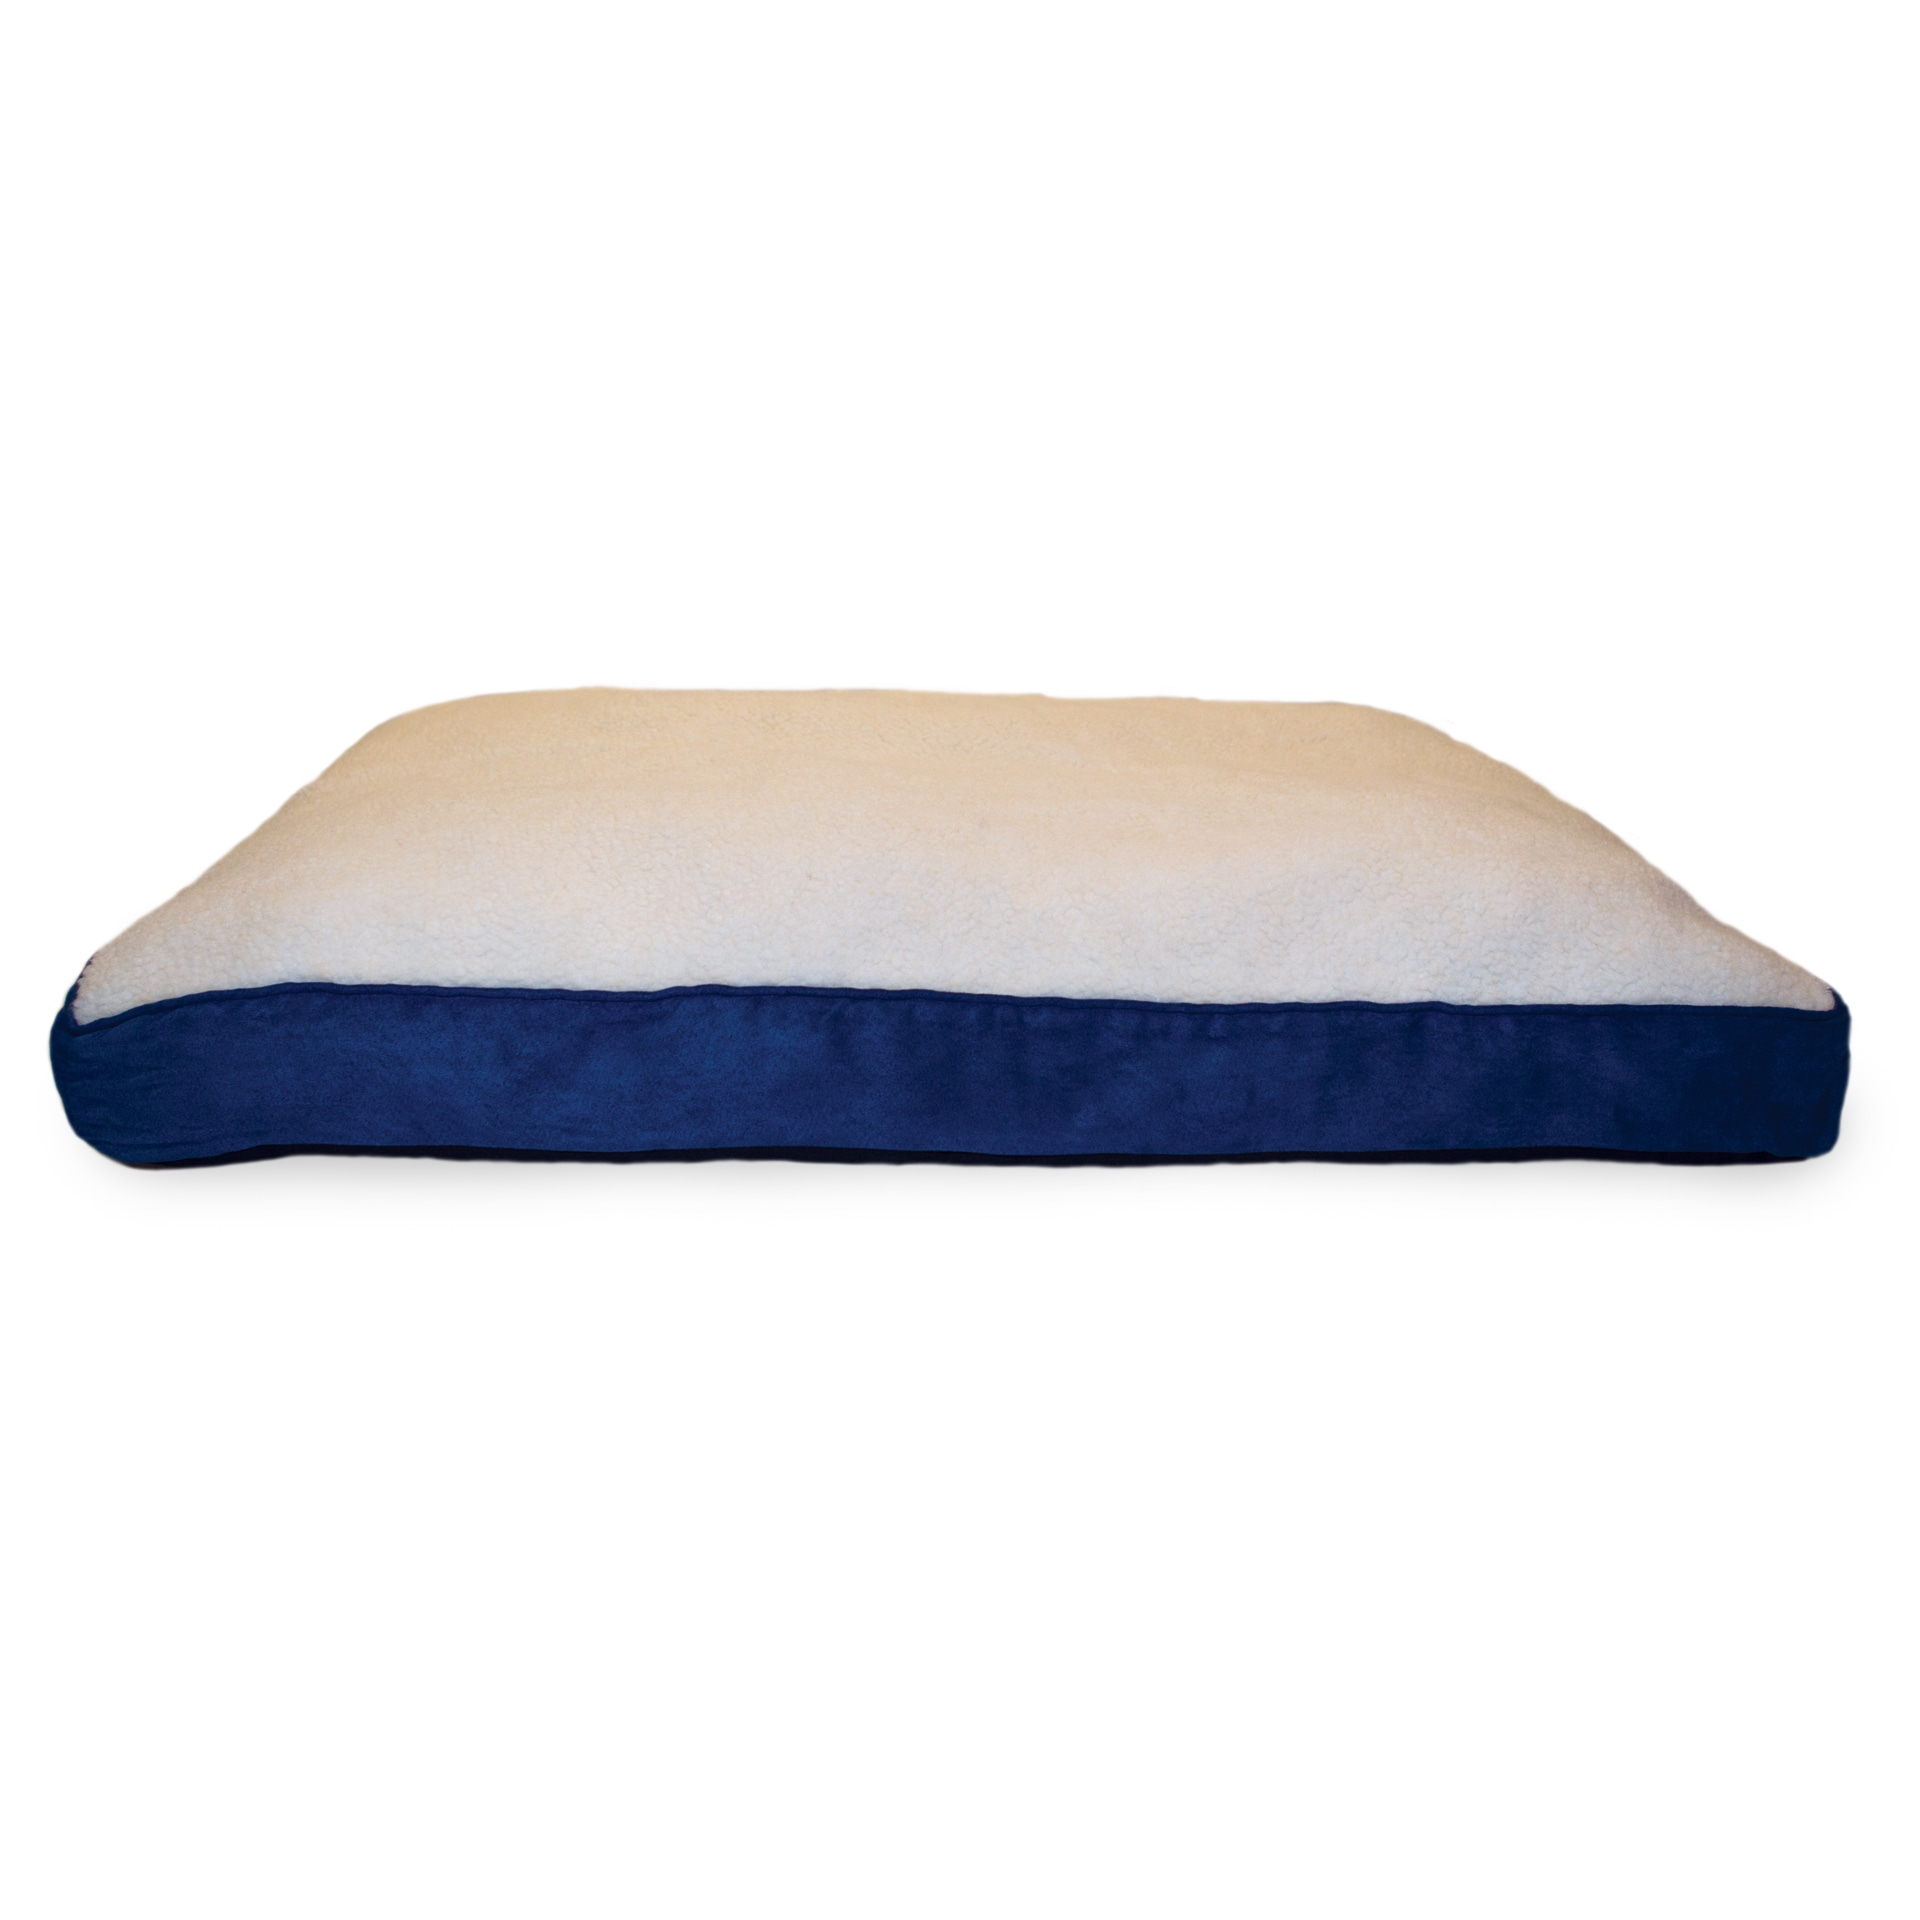 FurHaven Sherpa and Suede Deluxe Pillow Pet Bed (Large Na...